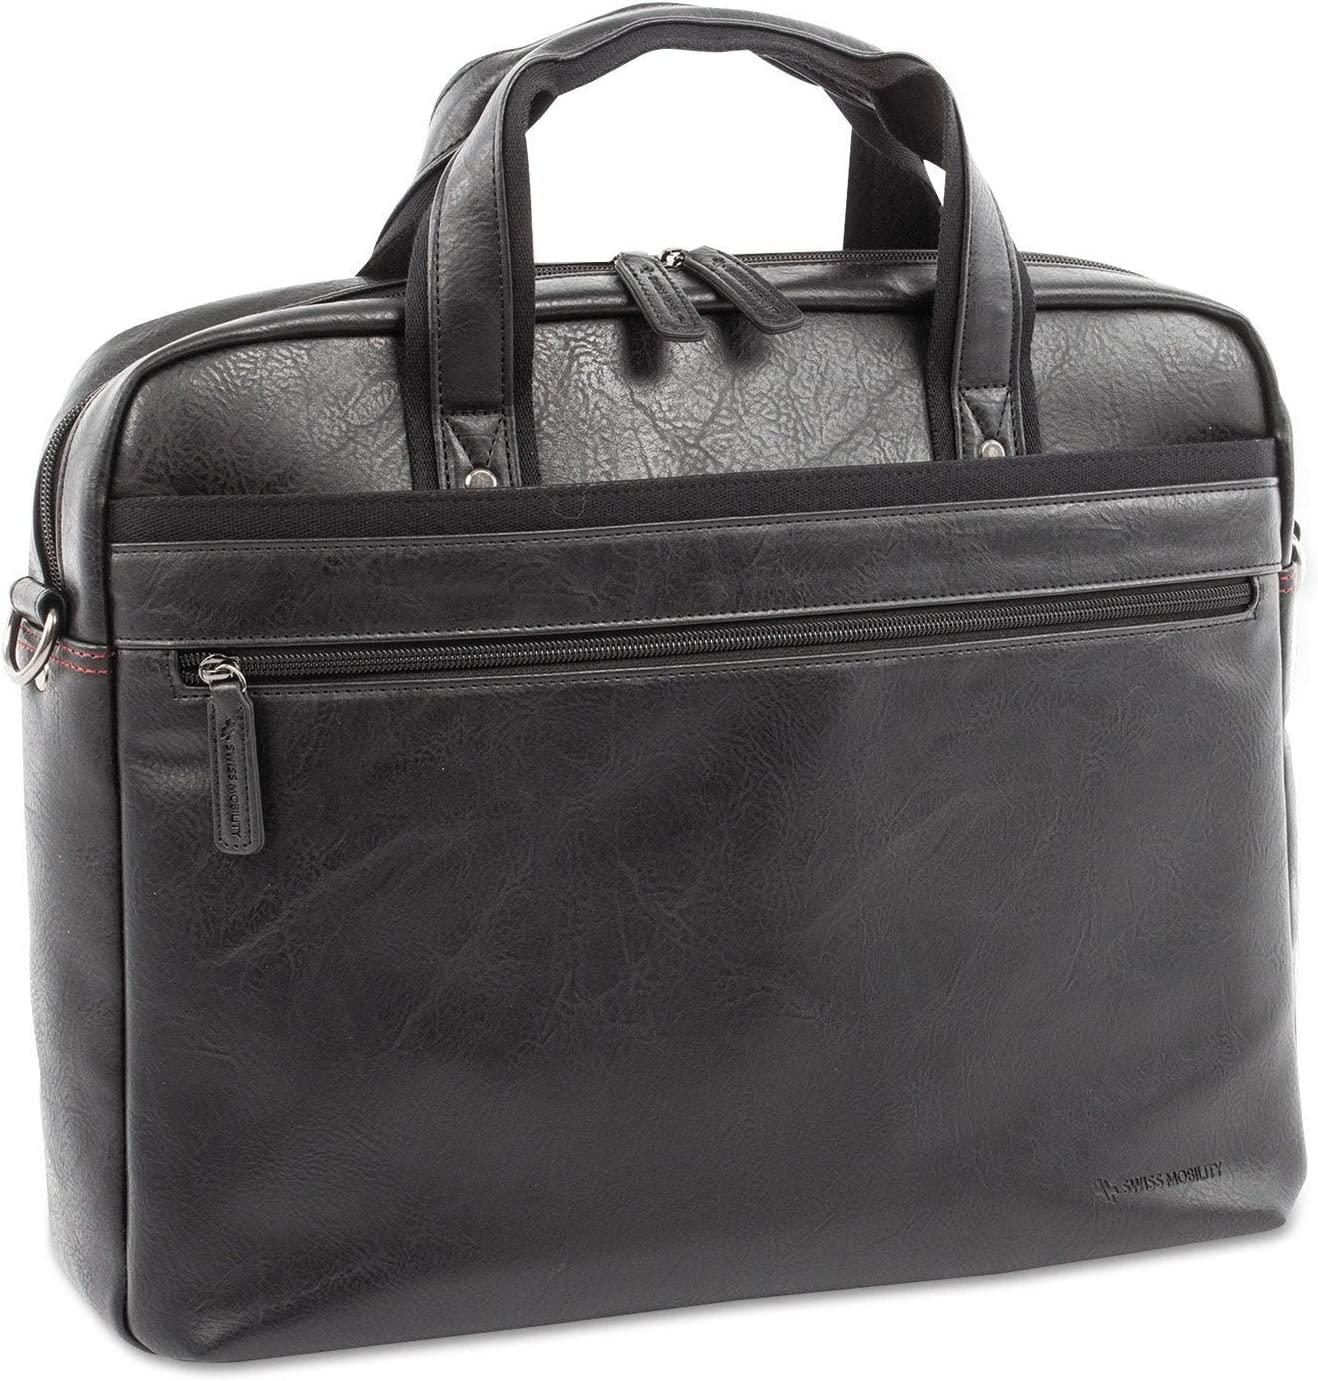 Blk Holds Laptops 15.6 Swiss Mobility Valais Executive Briefcase